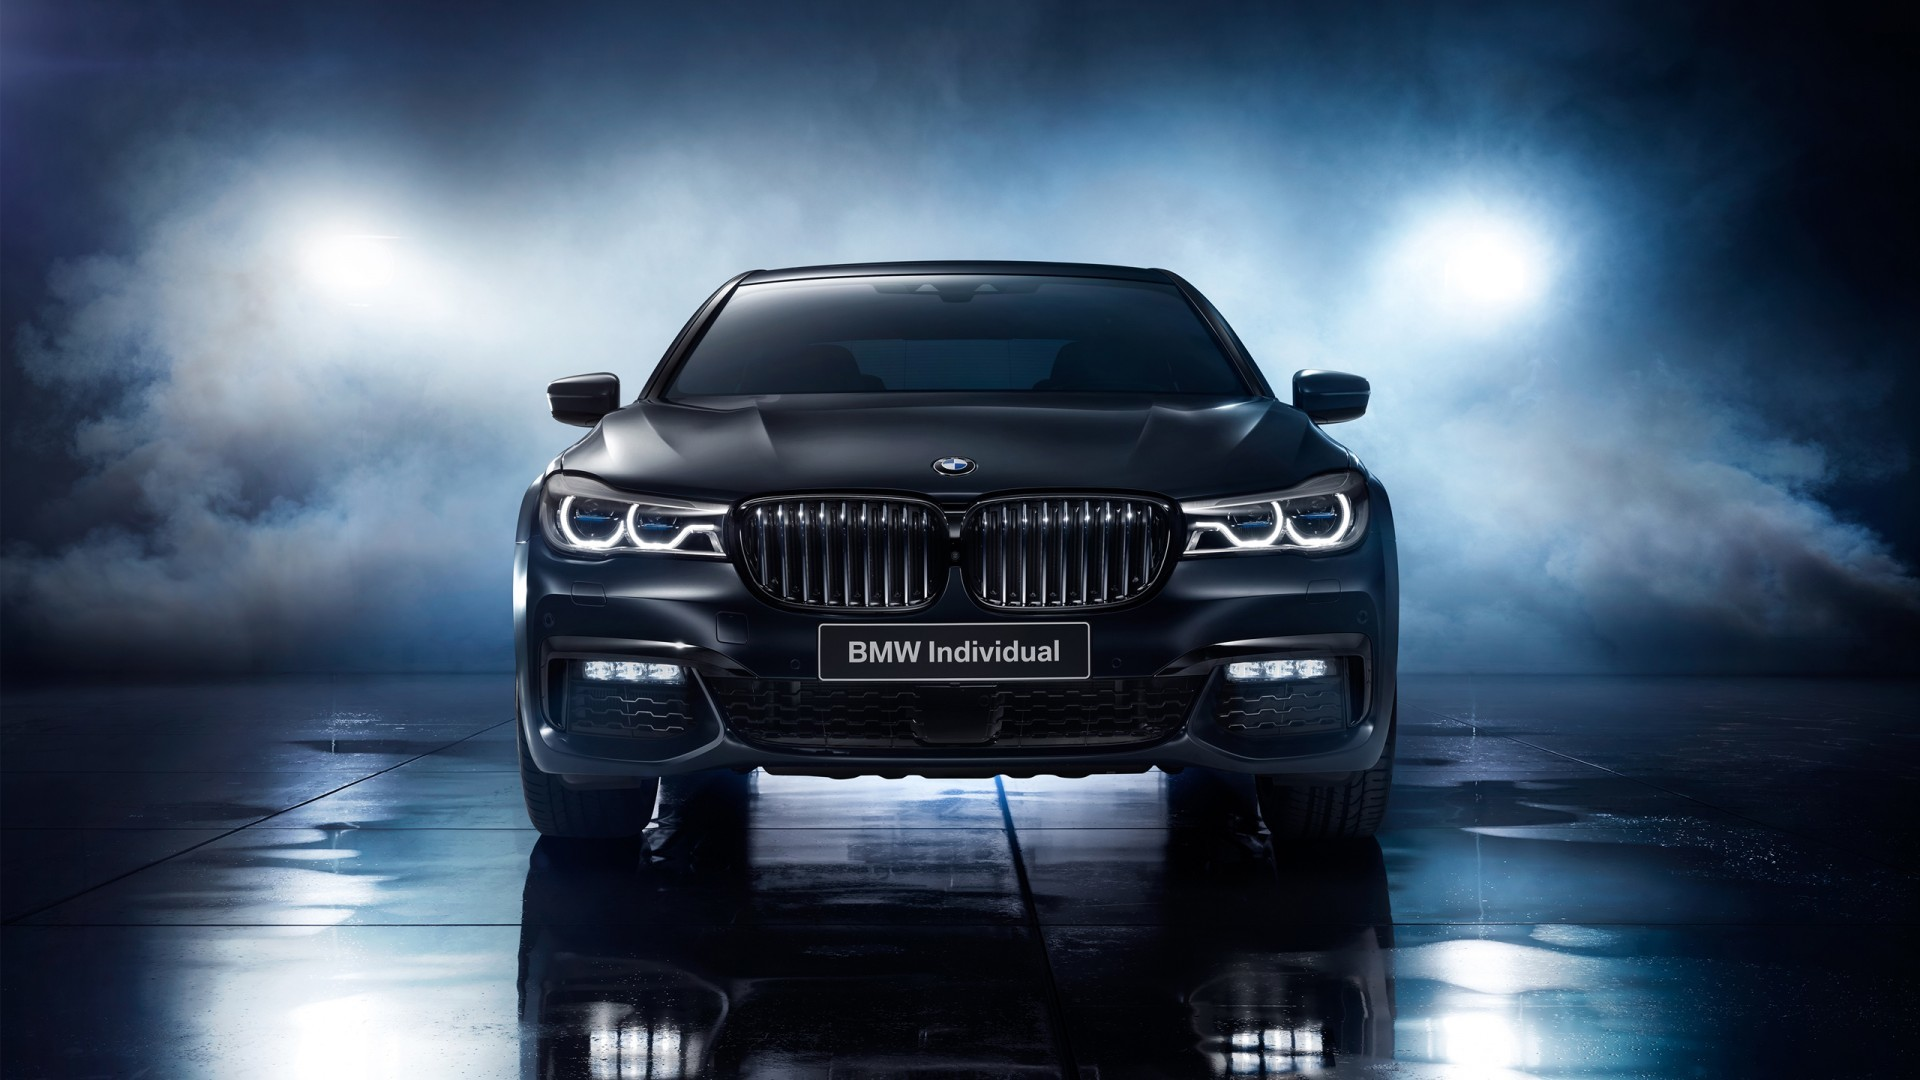 Res: 1920x1080, 2017 BMW 7 Series Black Ice wallpaper hd-